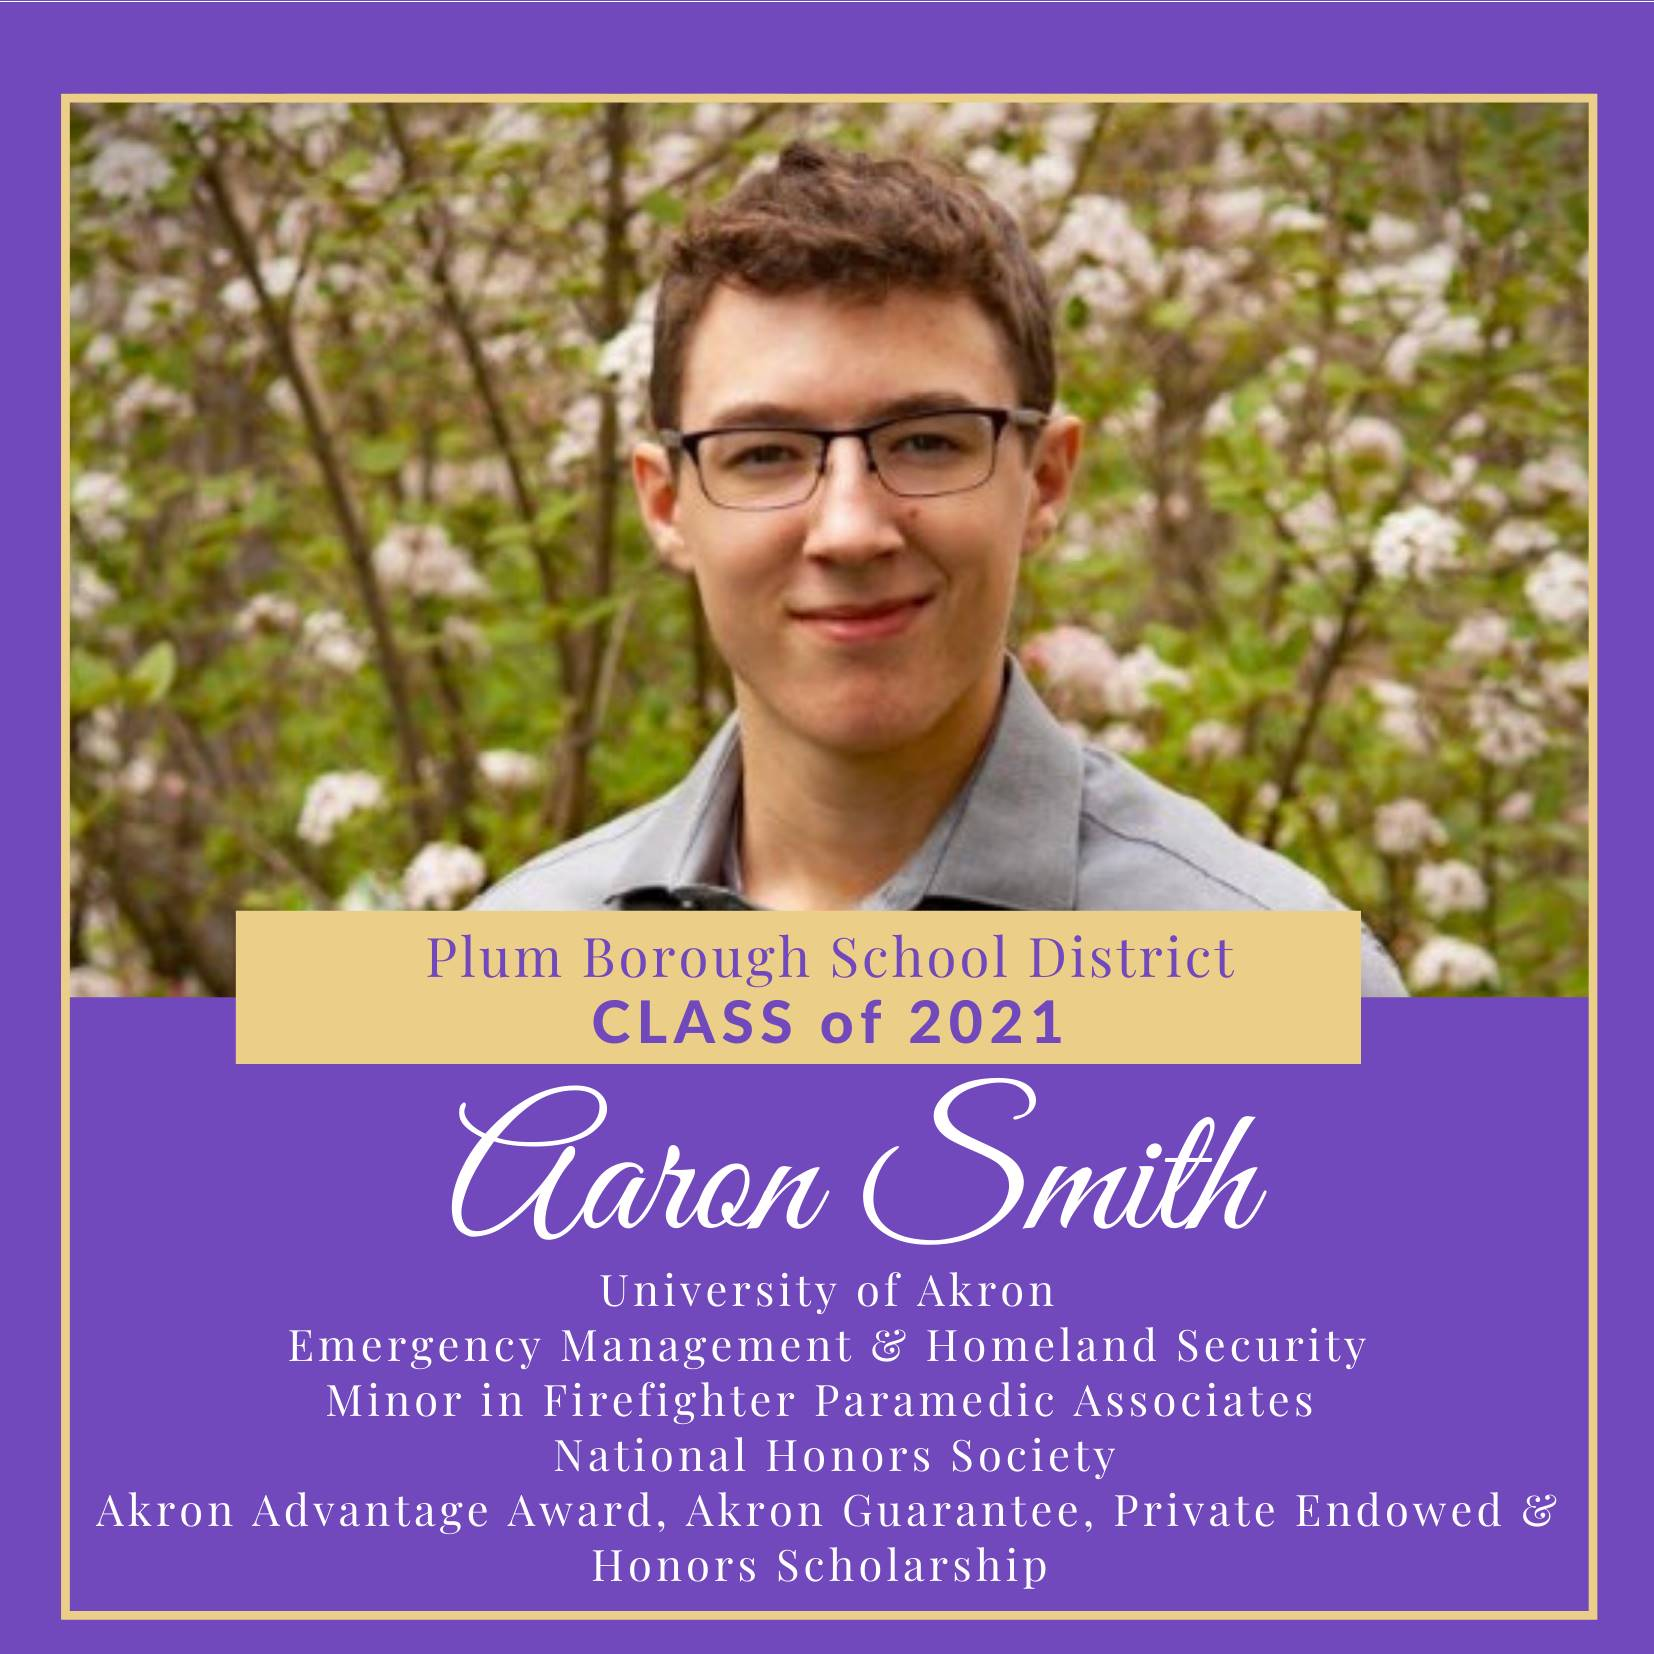 Congratulations to Aaron Smith, Class of 2021!